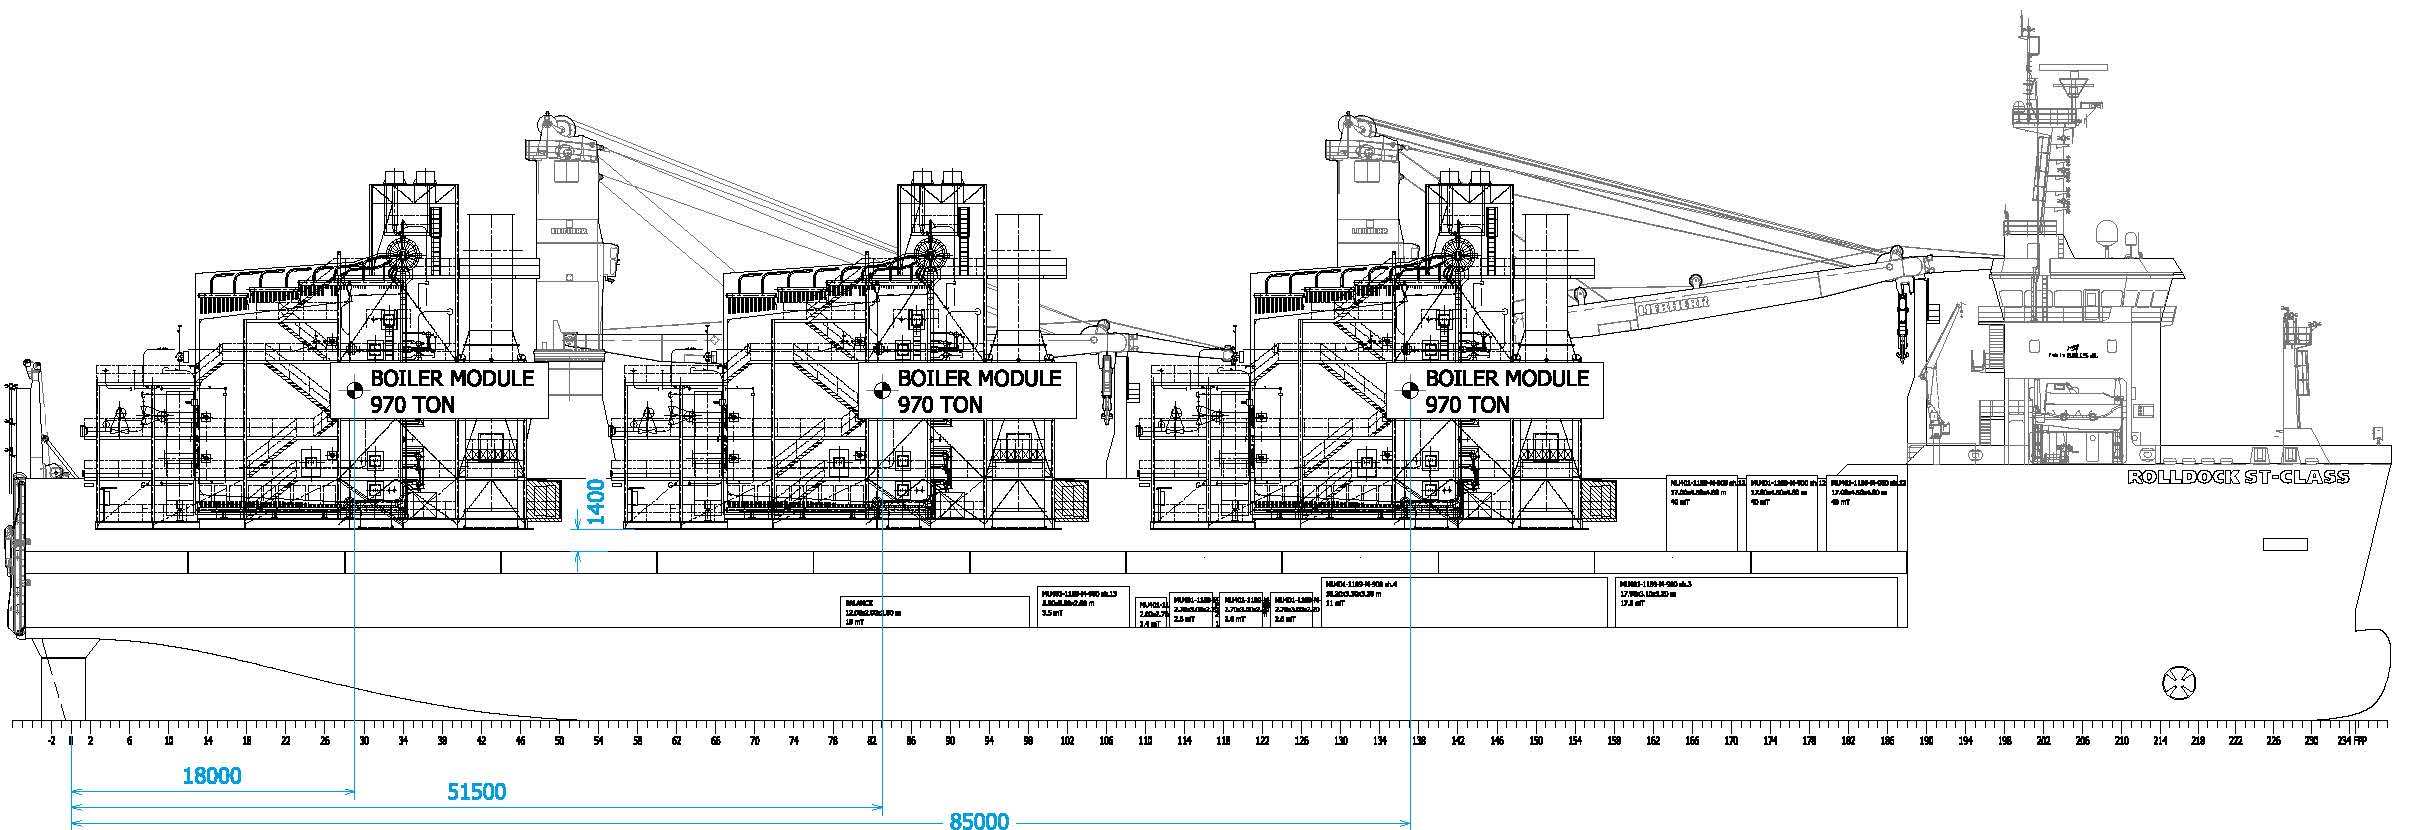 Stowage plan for the Macchi boilers